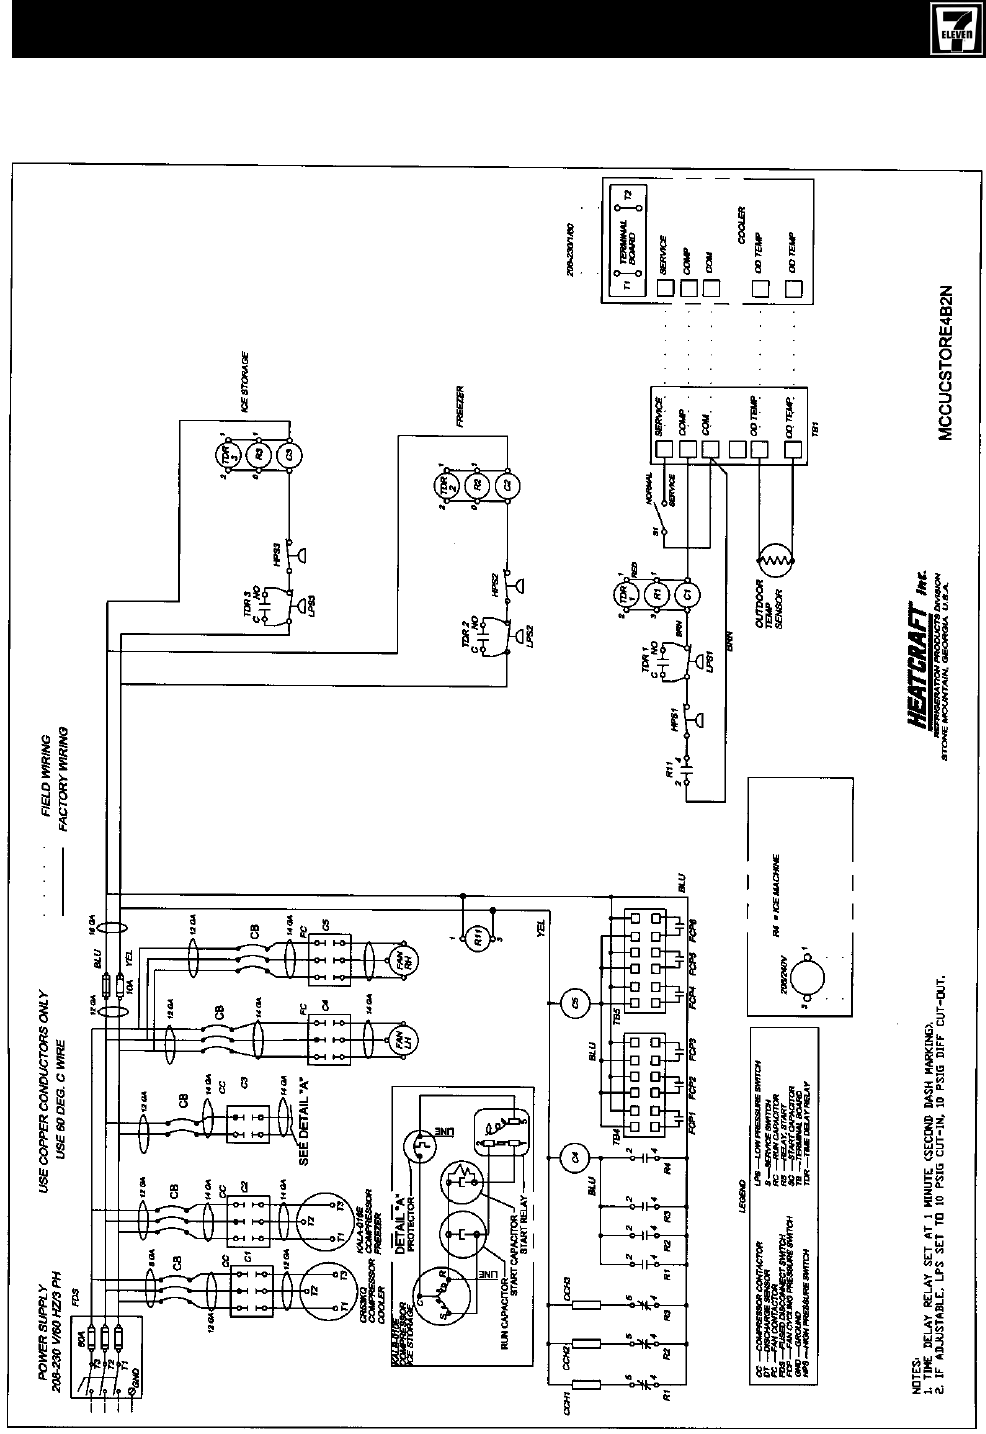 hight resolution of heatcraft refrigeration products ii users manual h im 711c5 pm6 5heatcraft evaporator coil wiring diagram